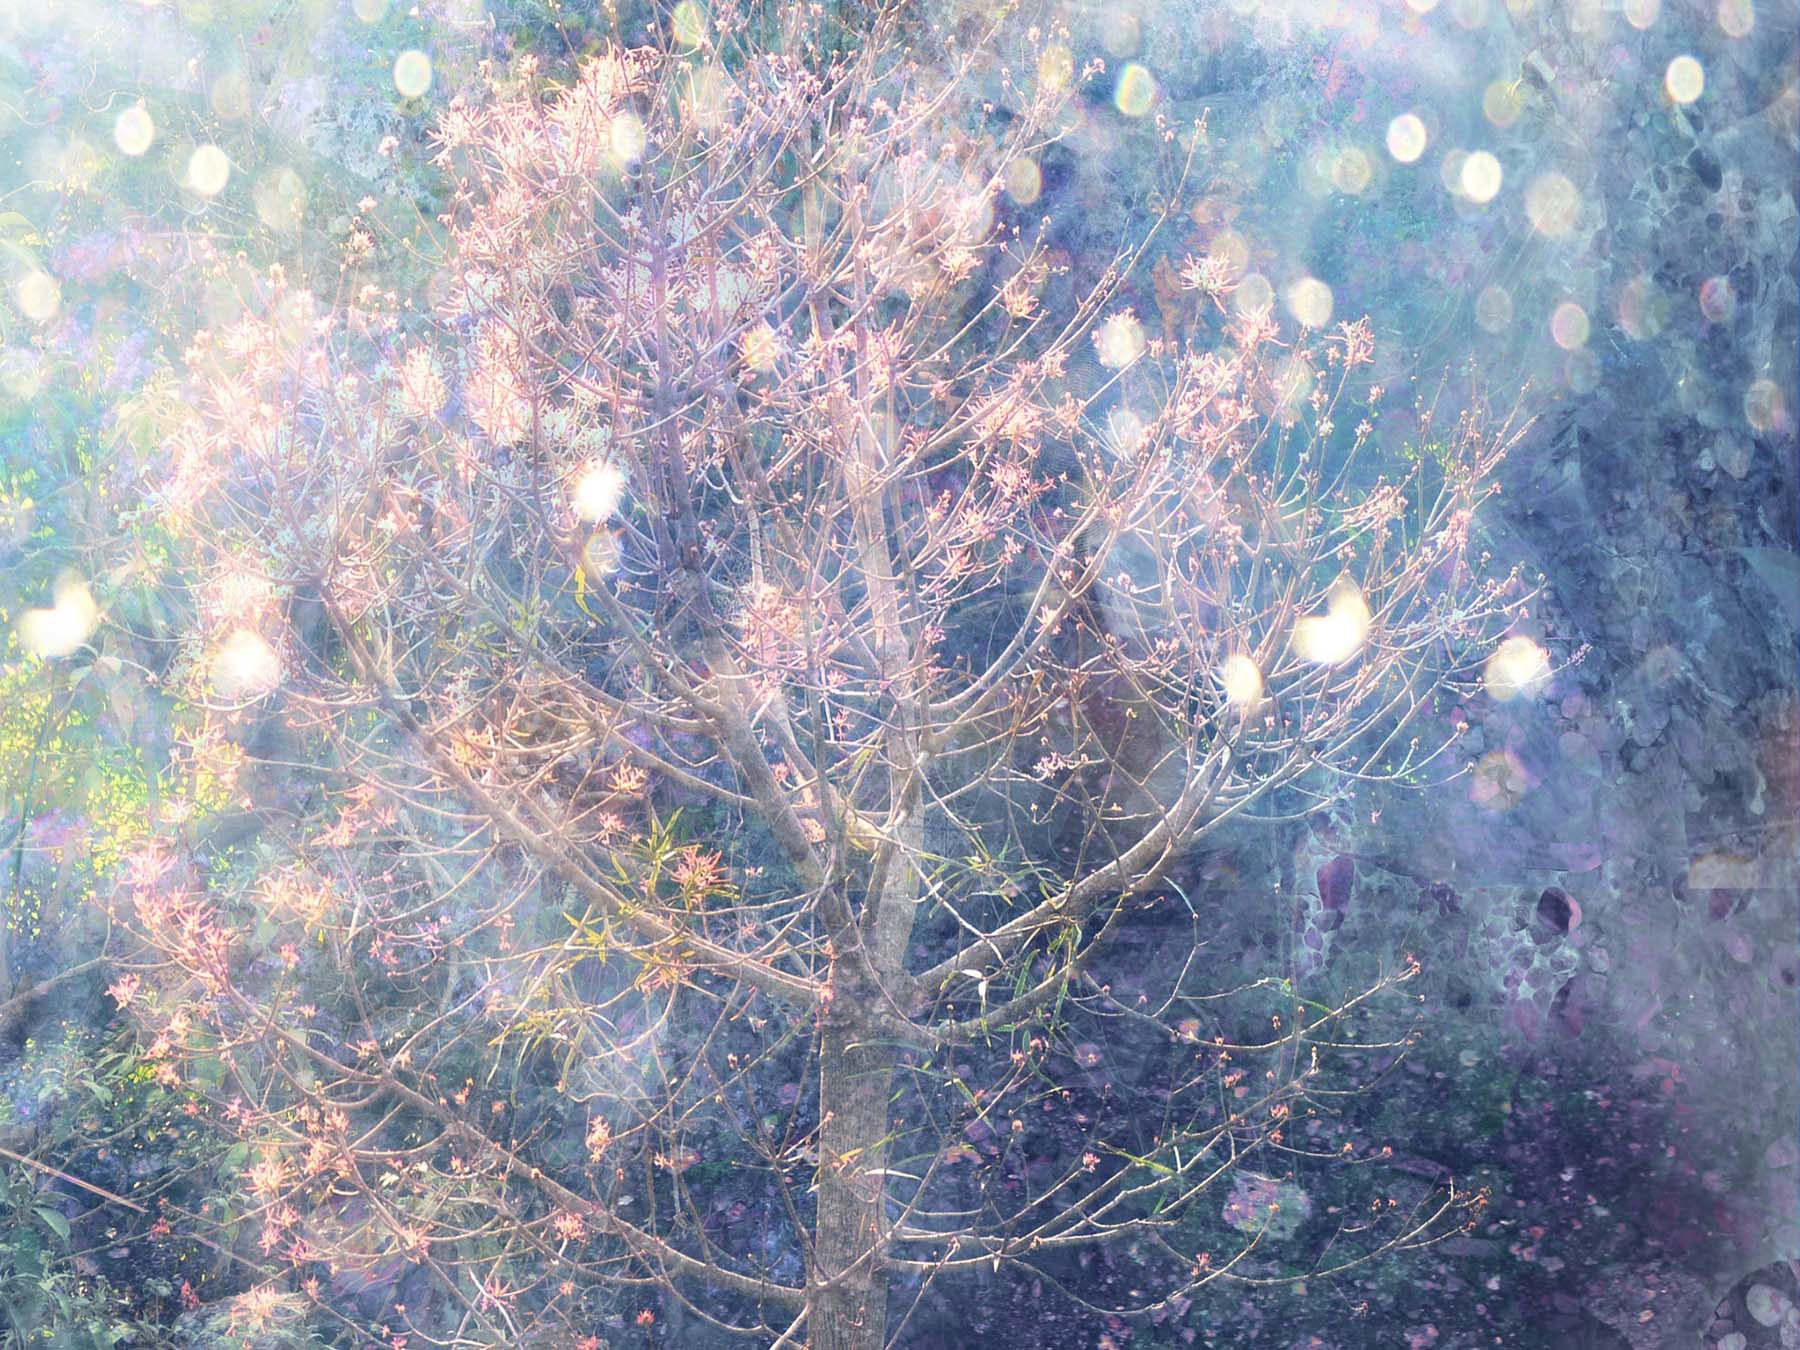 dreamy abstract image